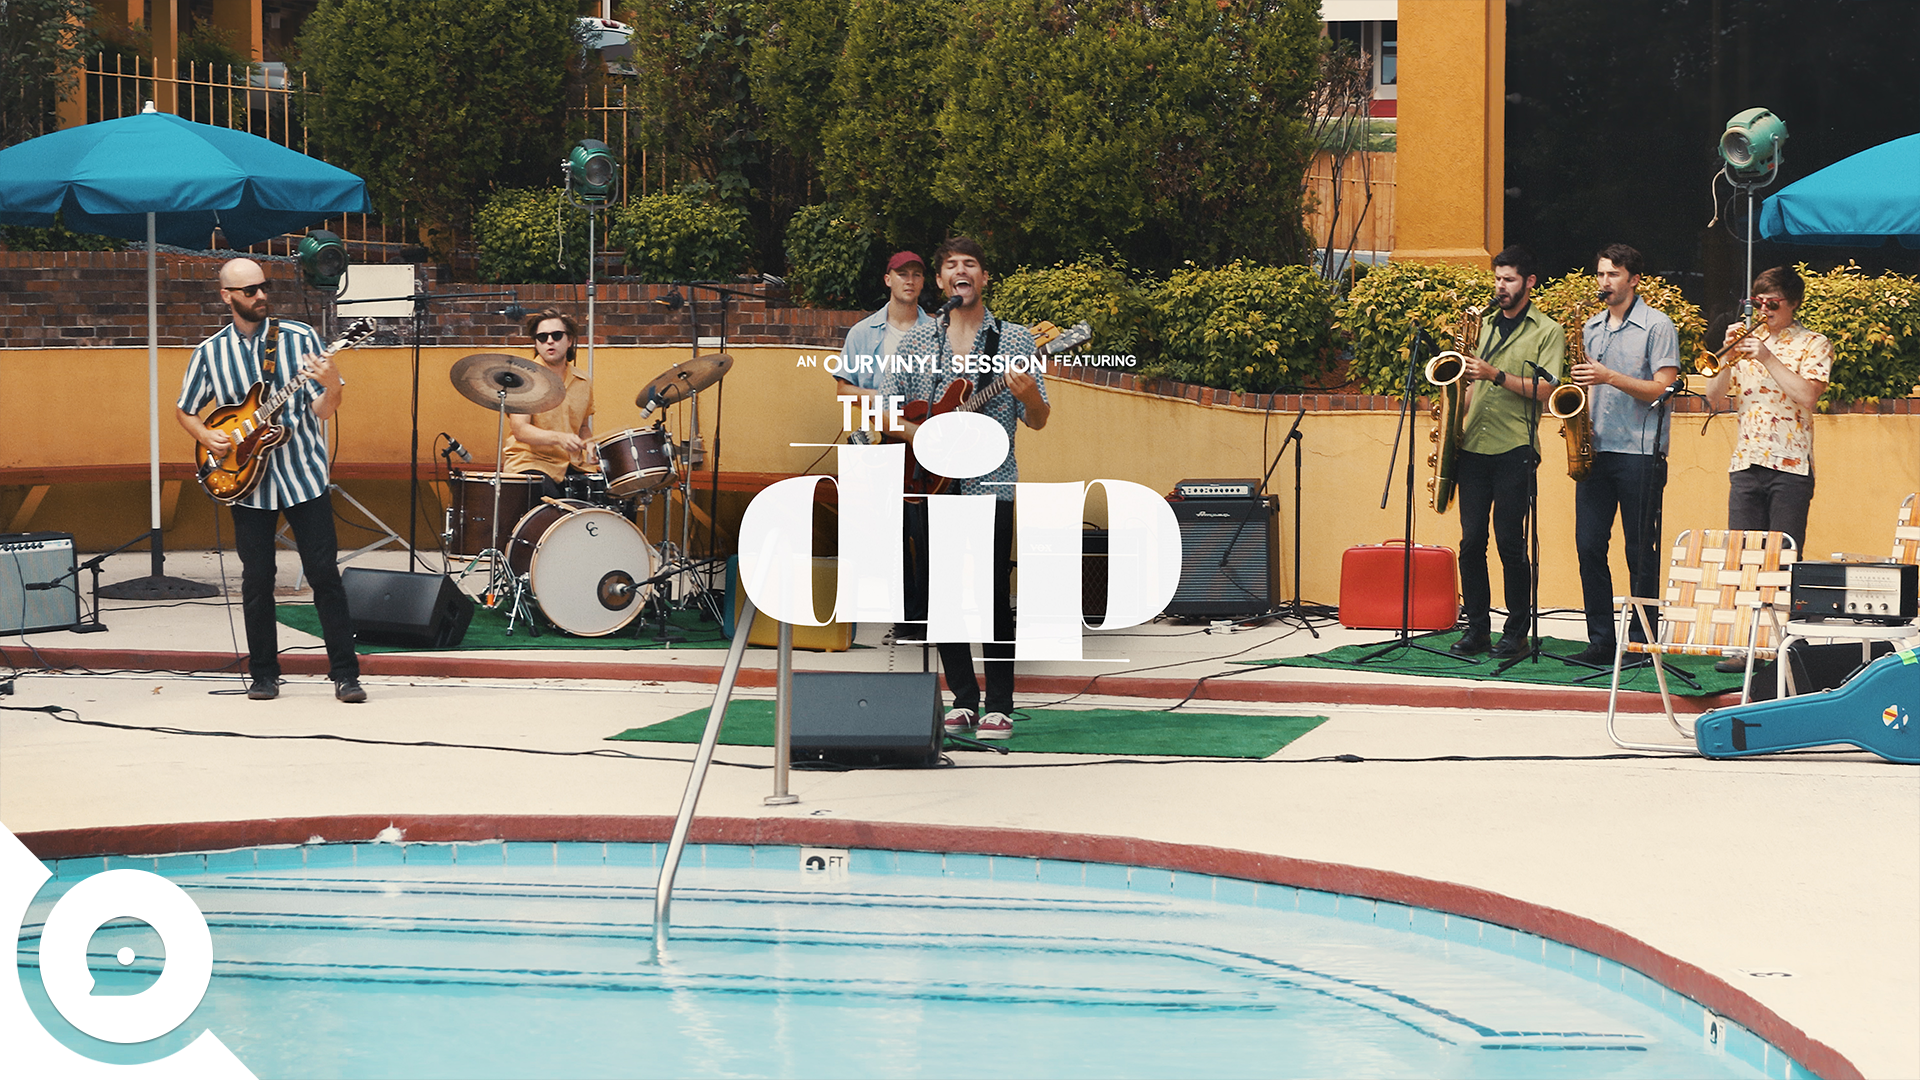 The Dip - Sure Don't Miss You | OurVinyl Sessions